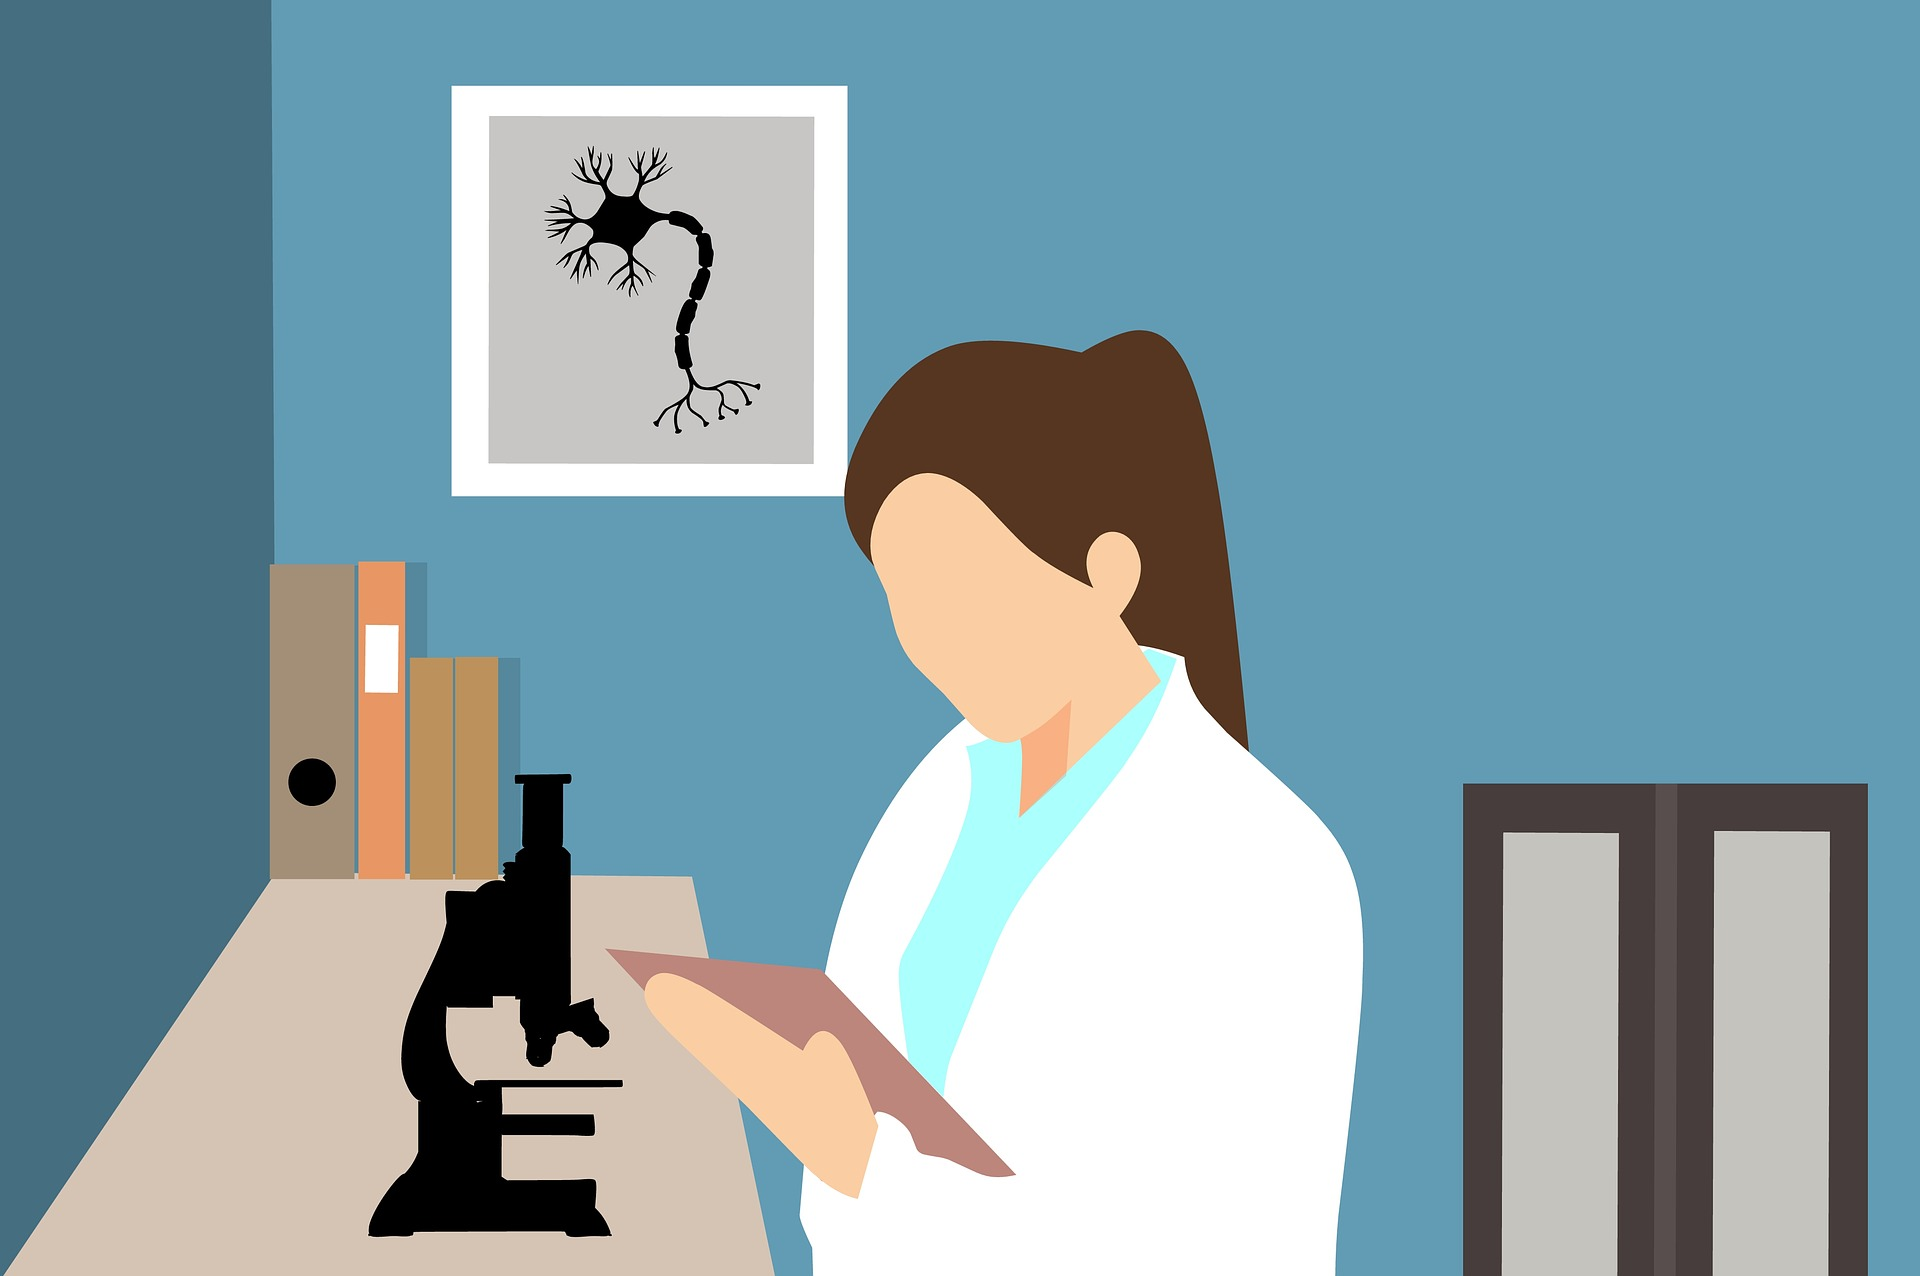 AACR Inviting Applications for Midcareer Female Investigator Grant